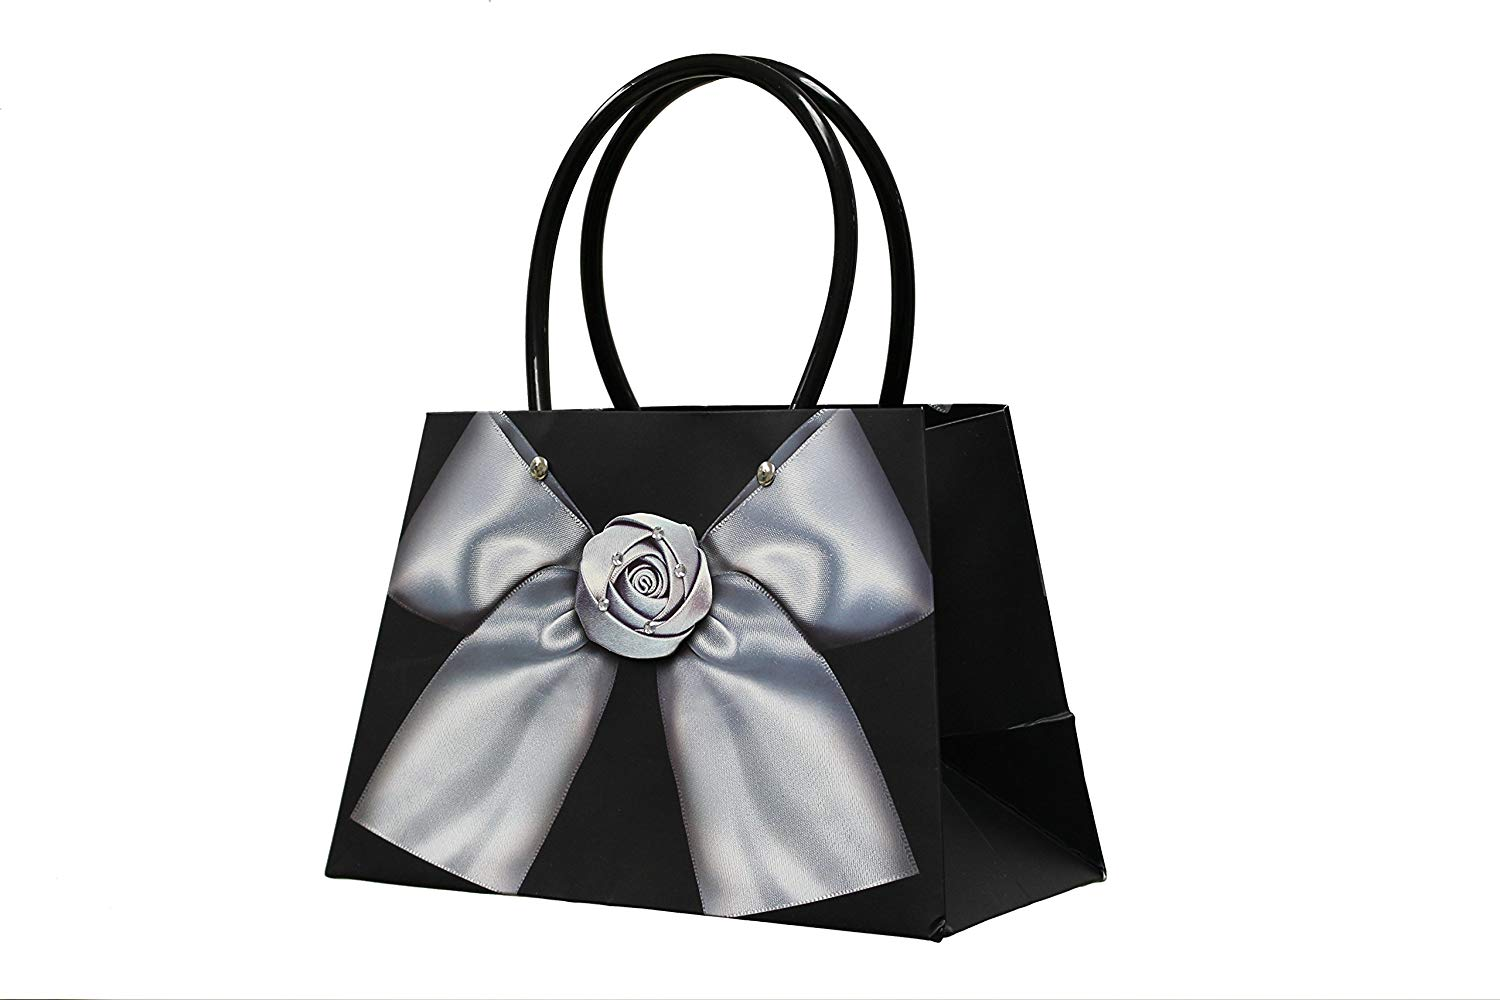 Cheap Black White Gift Bags Find Black White Gift Bags Deals On